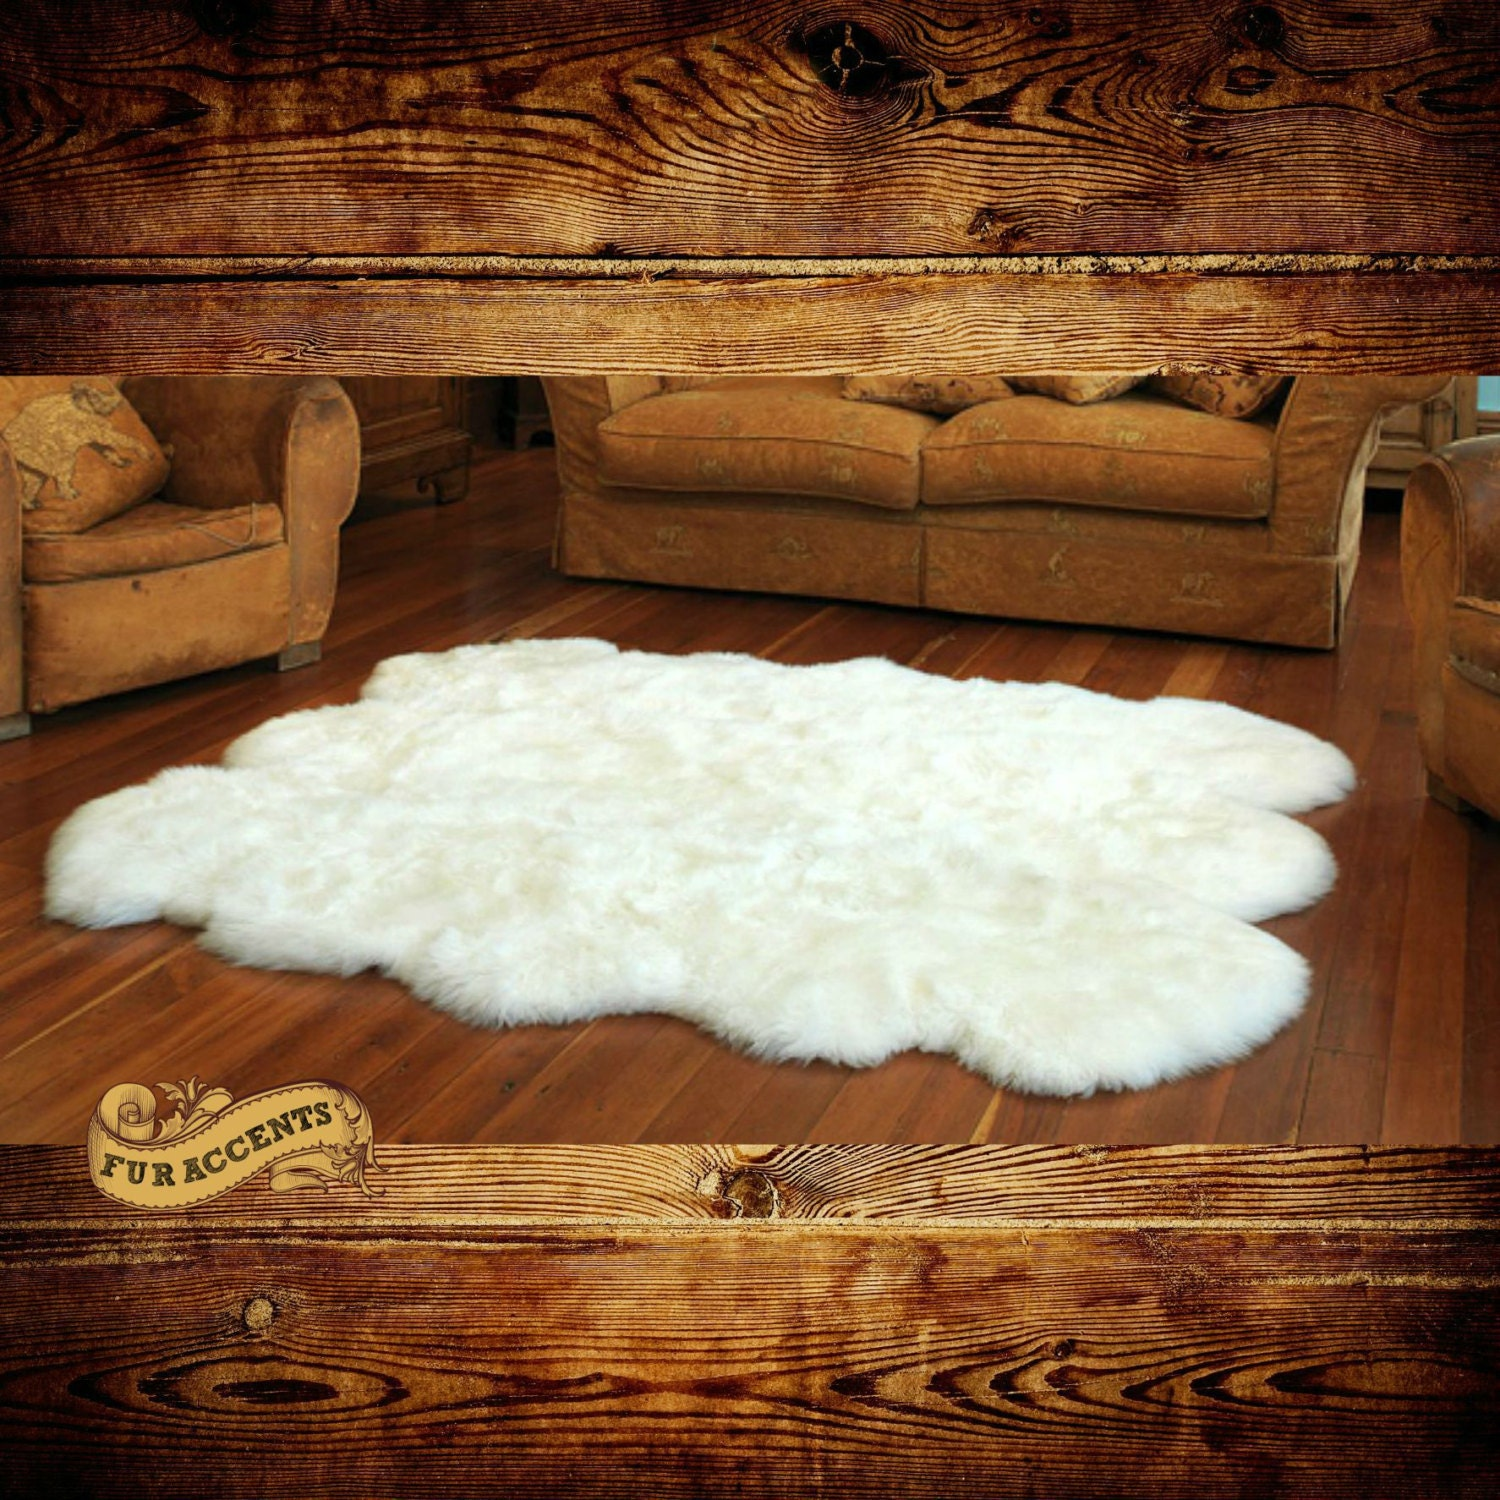 Shag Carpet Large Sheepskin Rug Fake Fur Living Room By